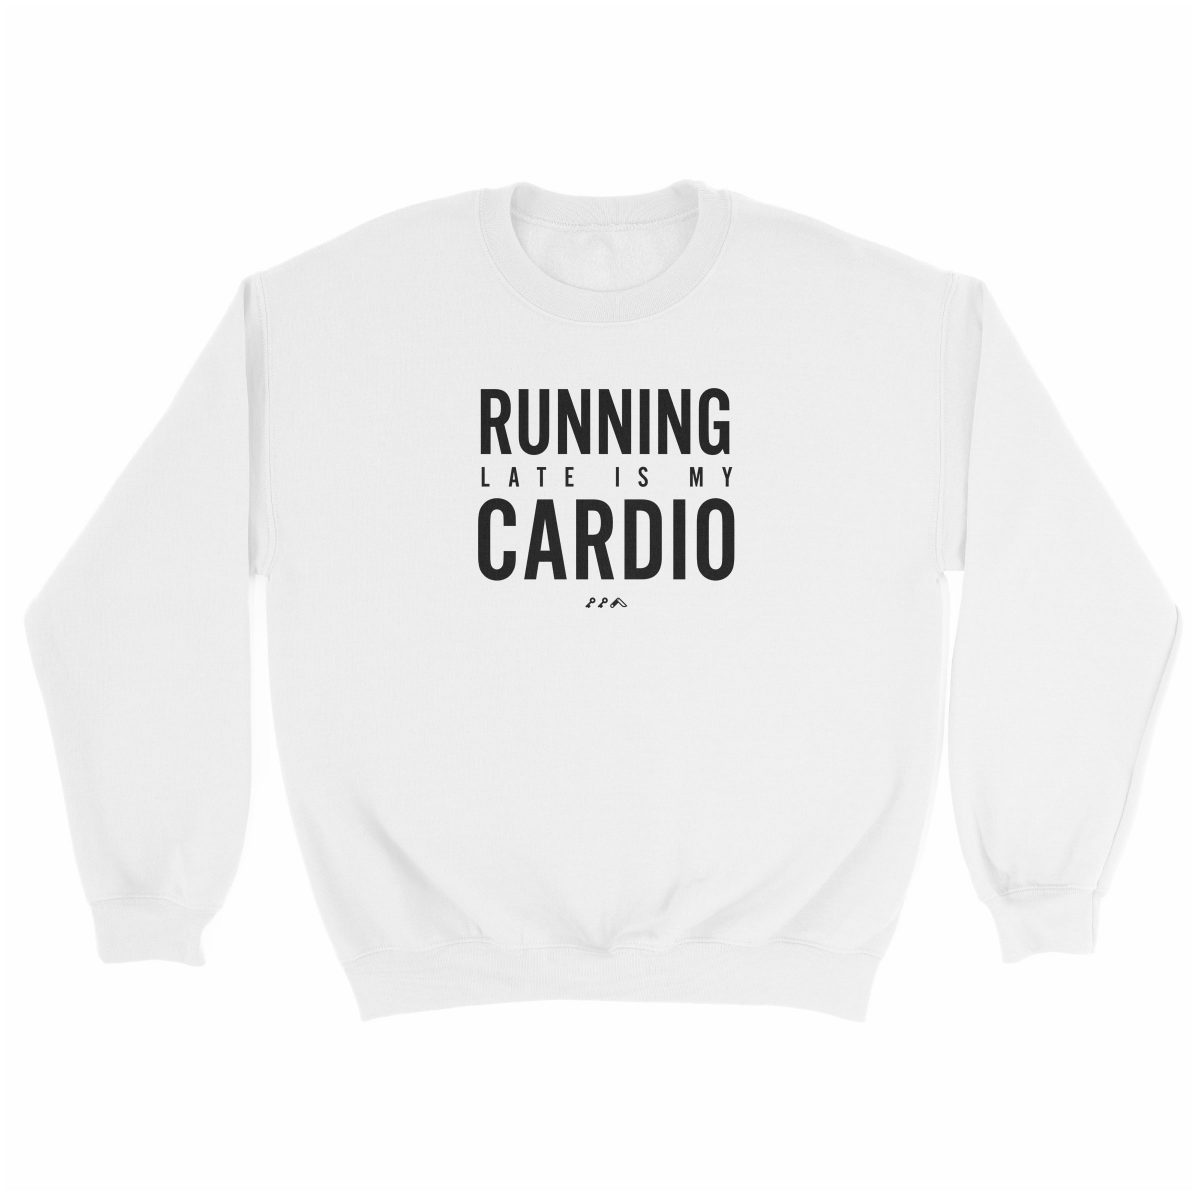 RUNNING LATE IS MY CARDIO funny workout sweatshirt in white at kikicutt.com